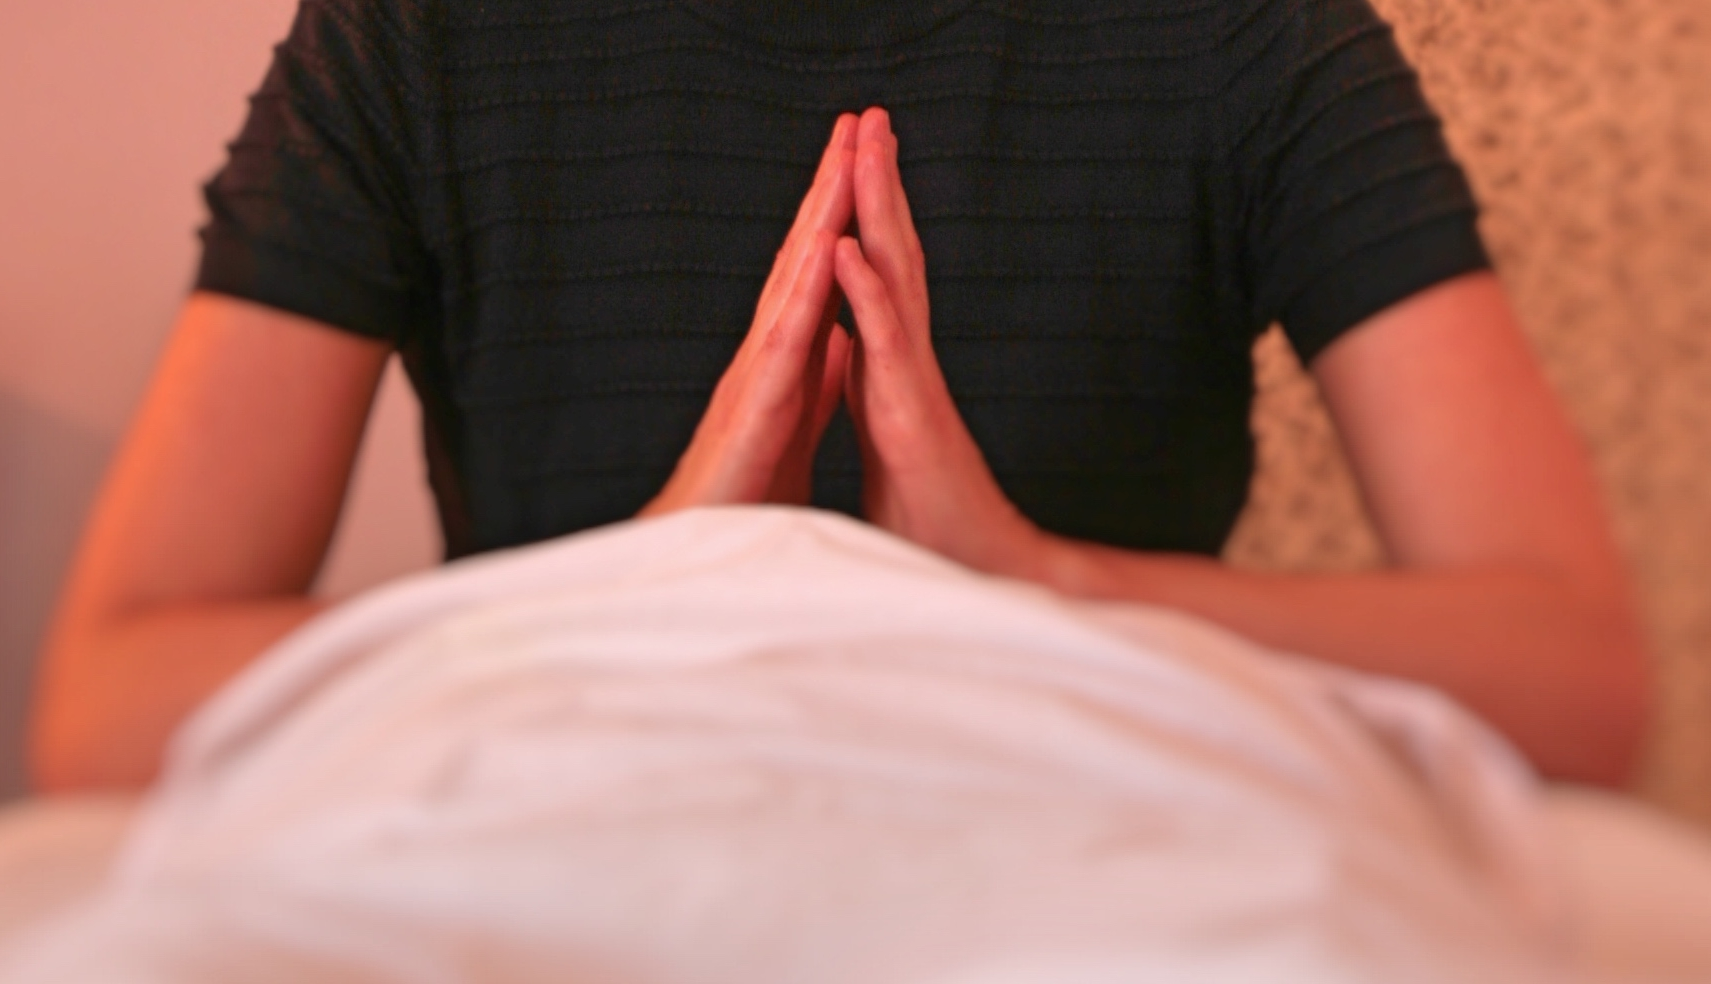 Therapeutic massage in Shropshire, a moving, living prayer